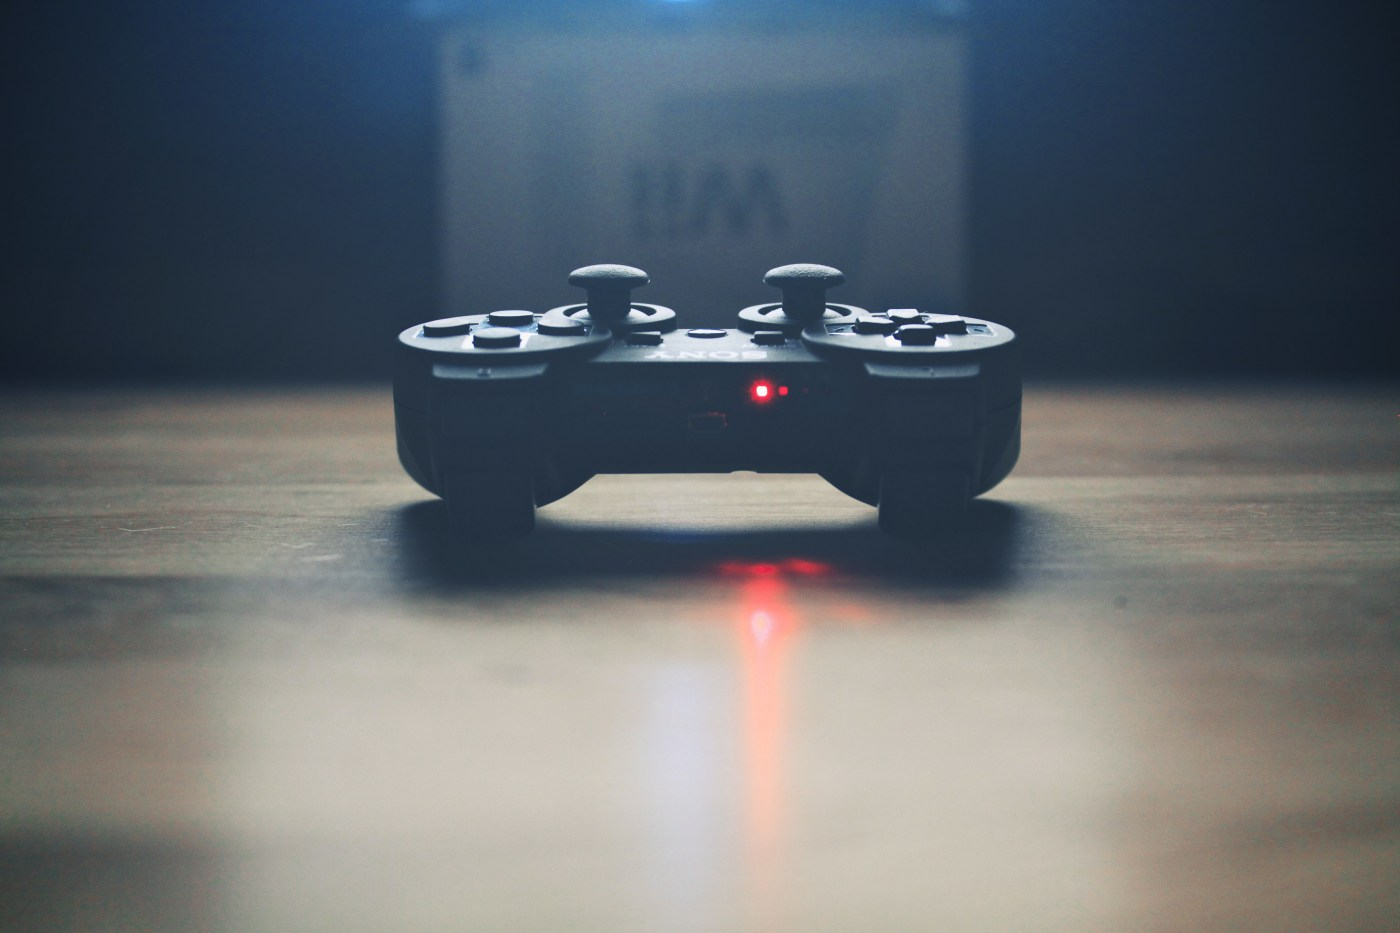 Games industry in Scotland. turned on wireless dualshock game controller